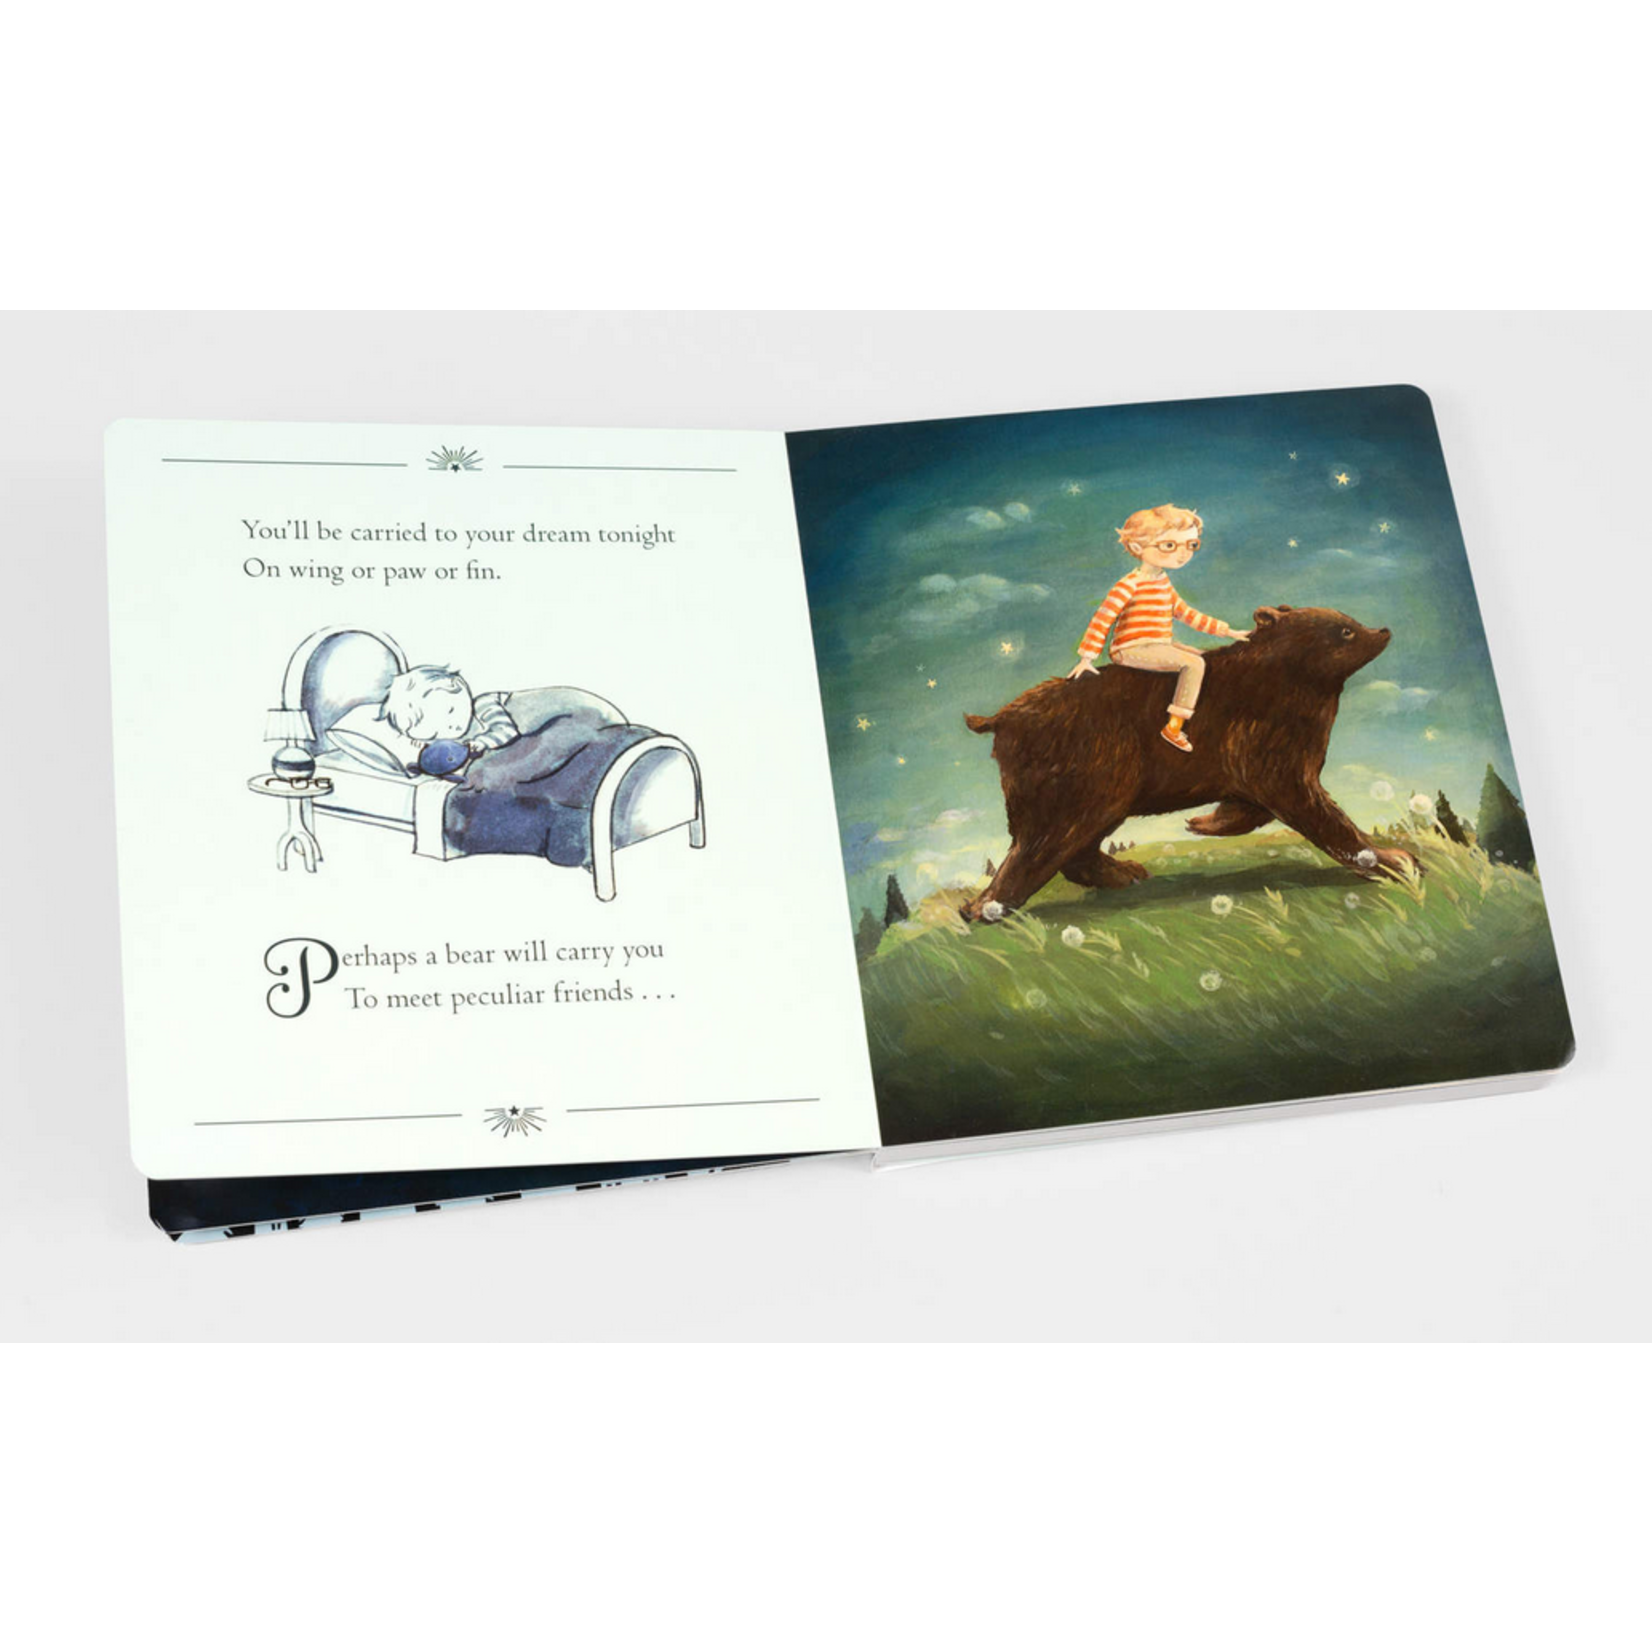 The Black Apple Dream Animals: A Bedtime Journey Board Book - Emily Winfield Martin